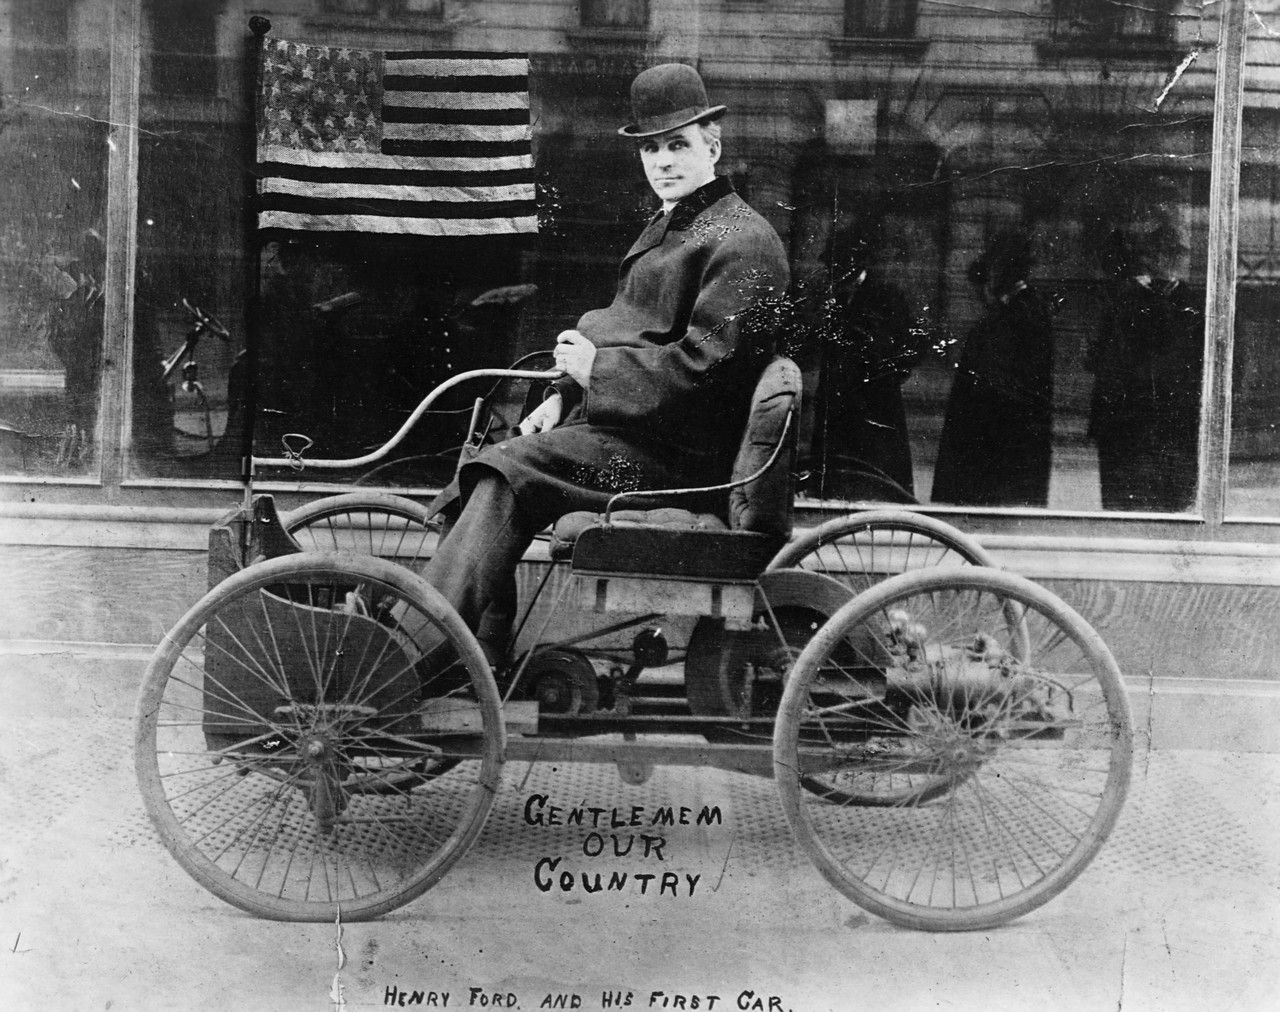 Henry Ford poses on the first car he built, the Ford Quadricycle ...